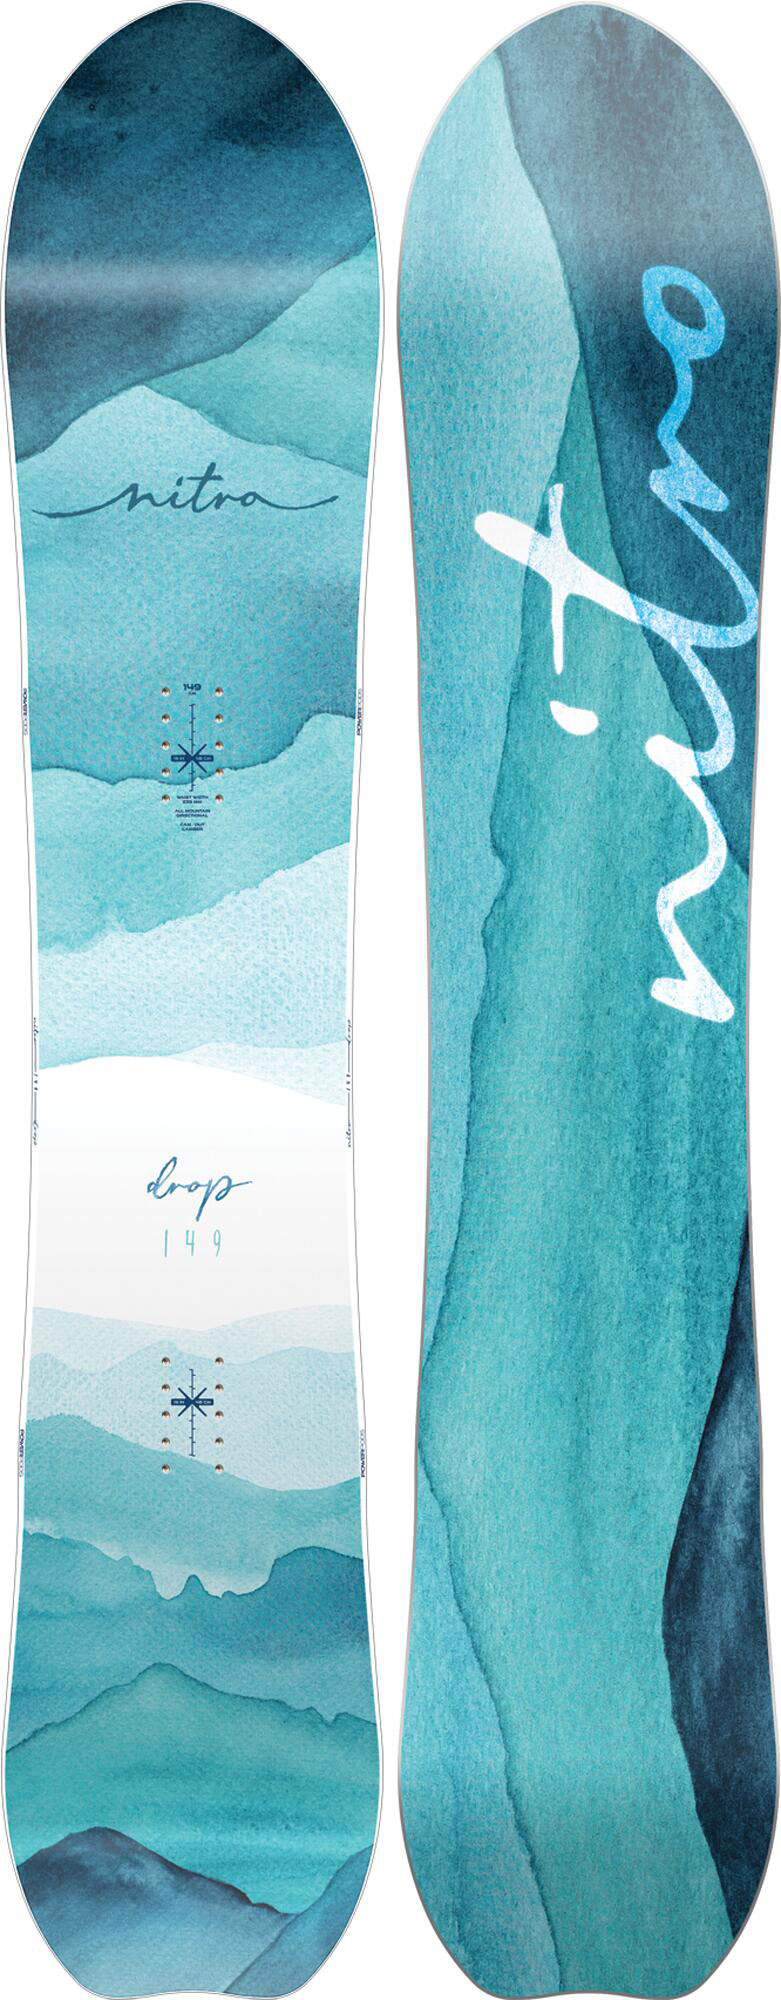 Nitro Drop Women's Snowboard Review